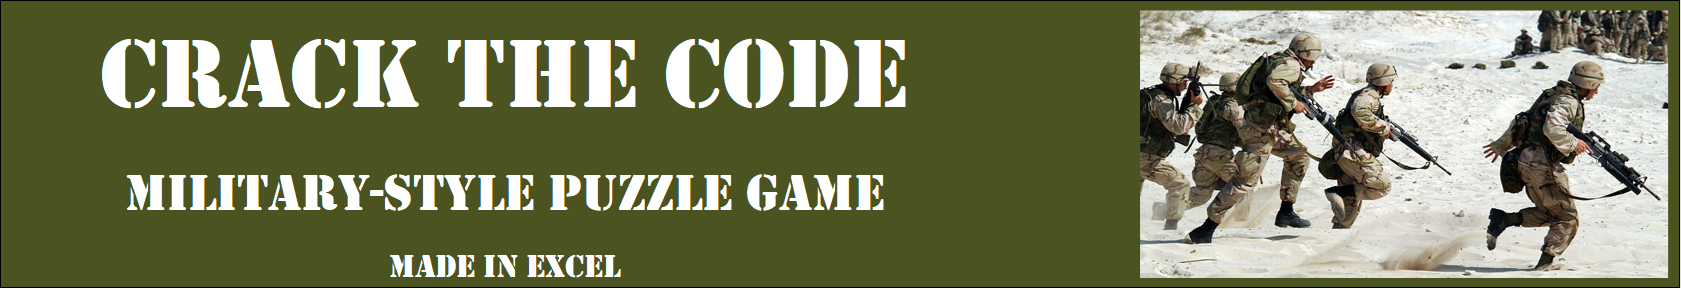 Crack the Code - Military-style Game made in Excel